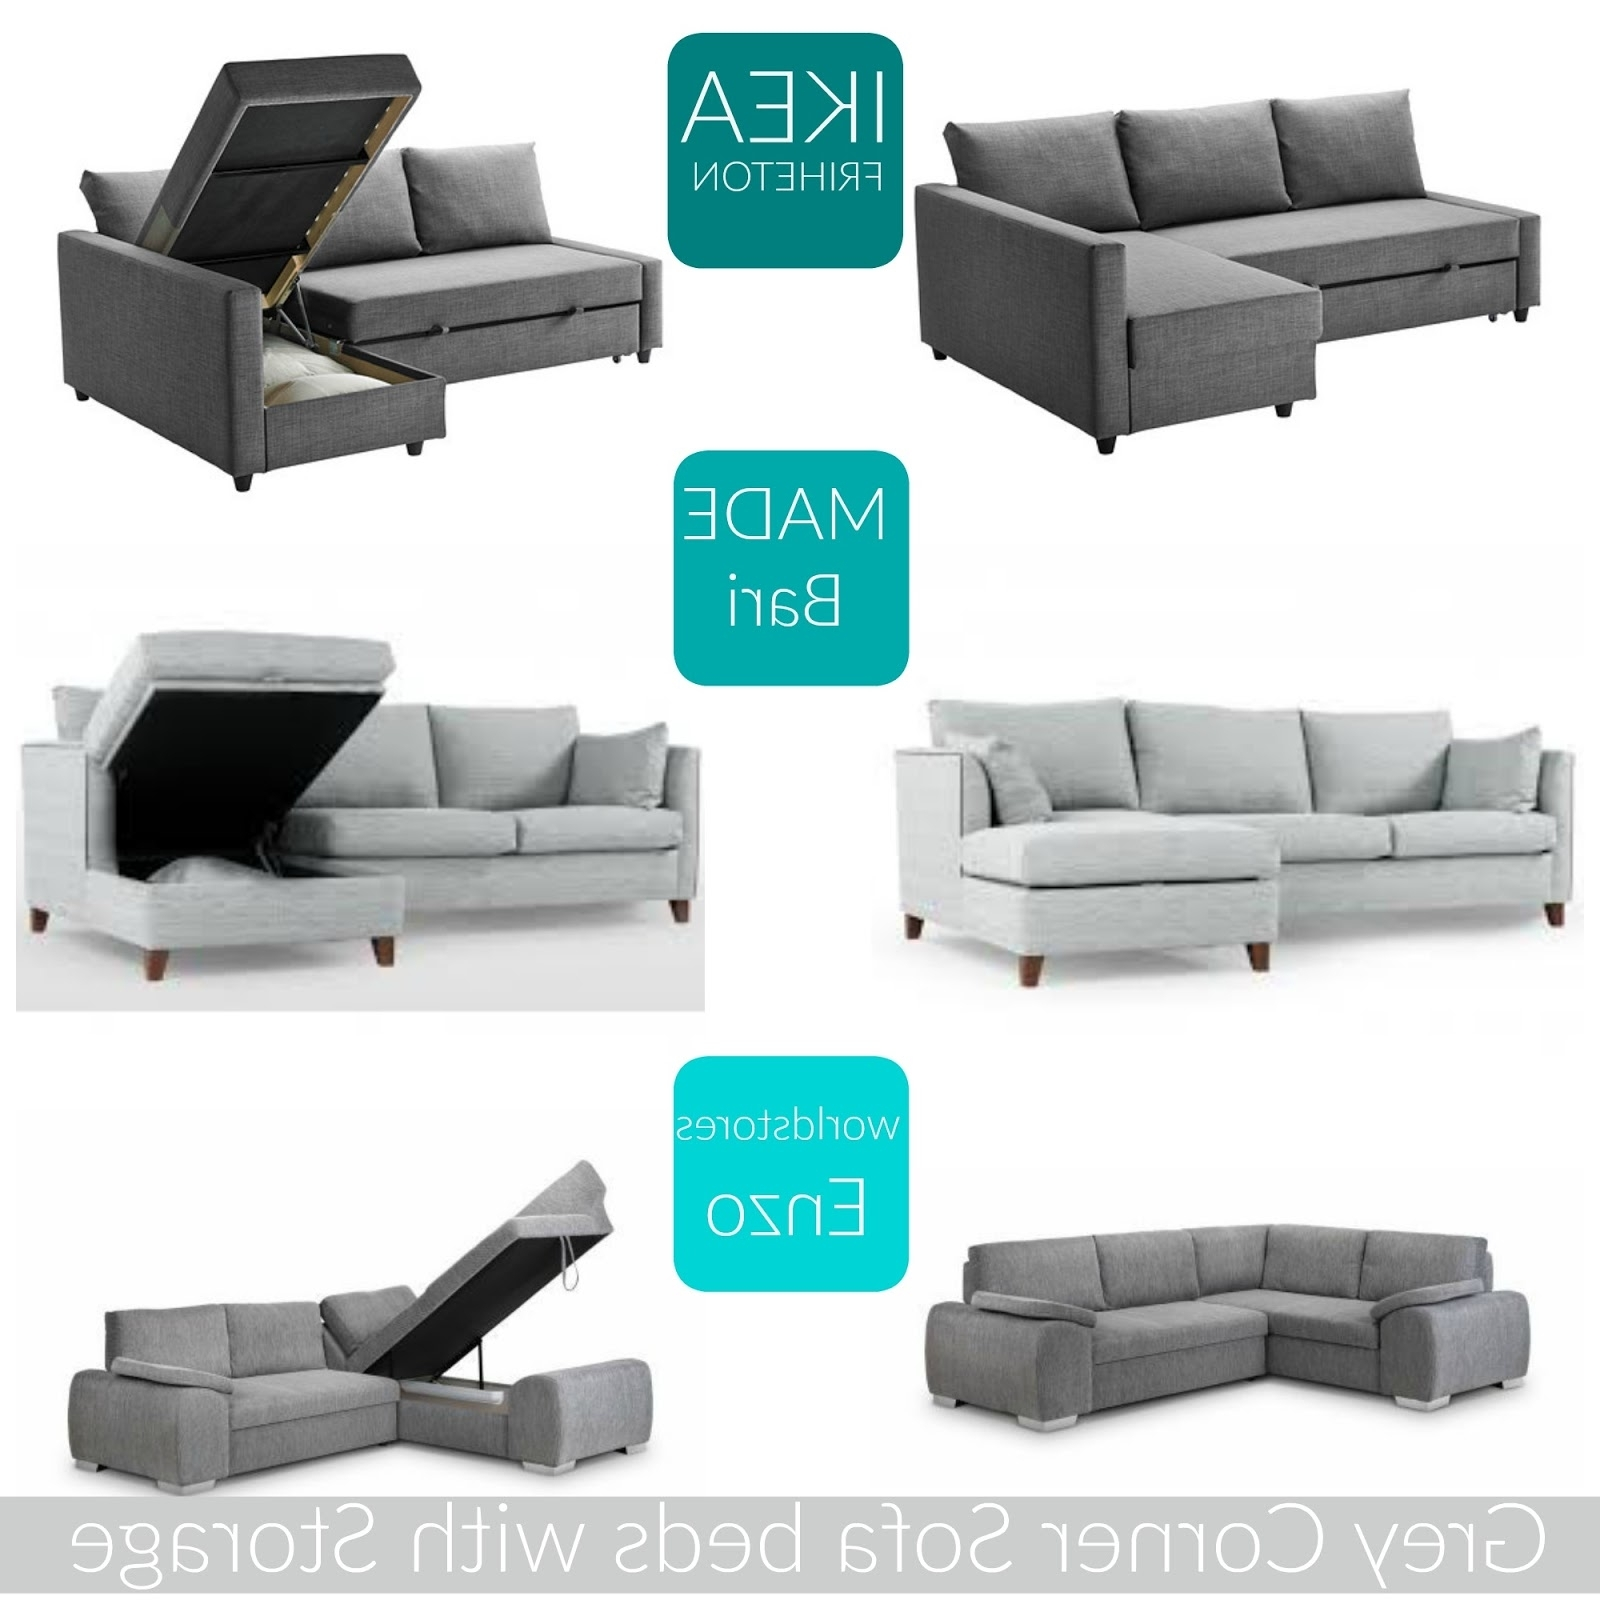 Famous Home: The Best Grey Corner Sofa Beds With Storage (View 10 of 15)